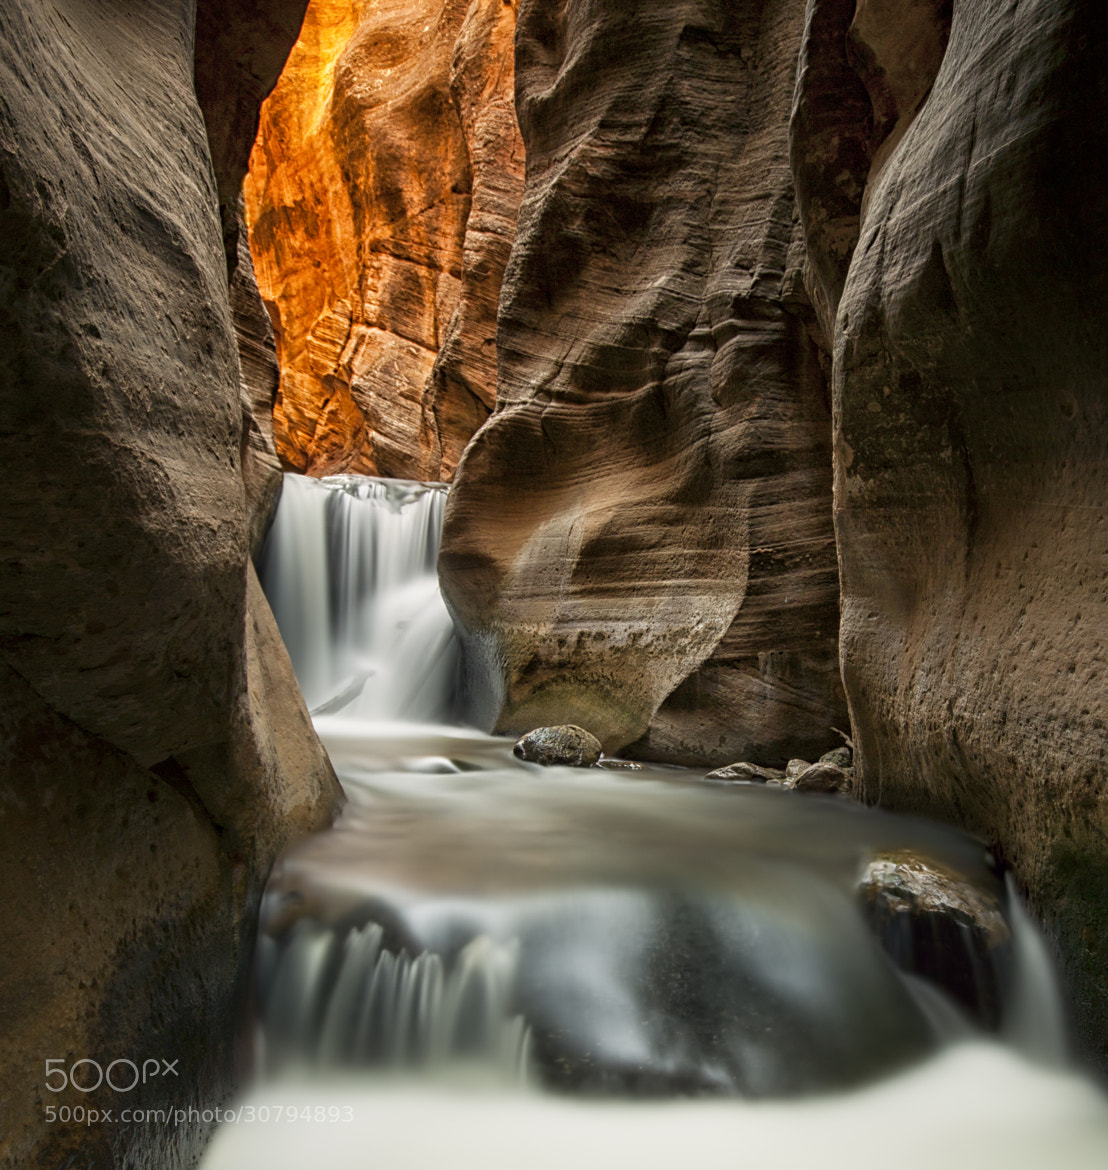 Photograph Flowing II by Danilo Faria on 500px